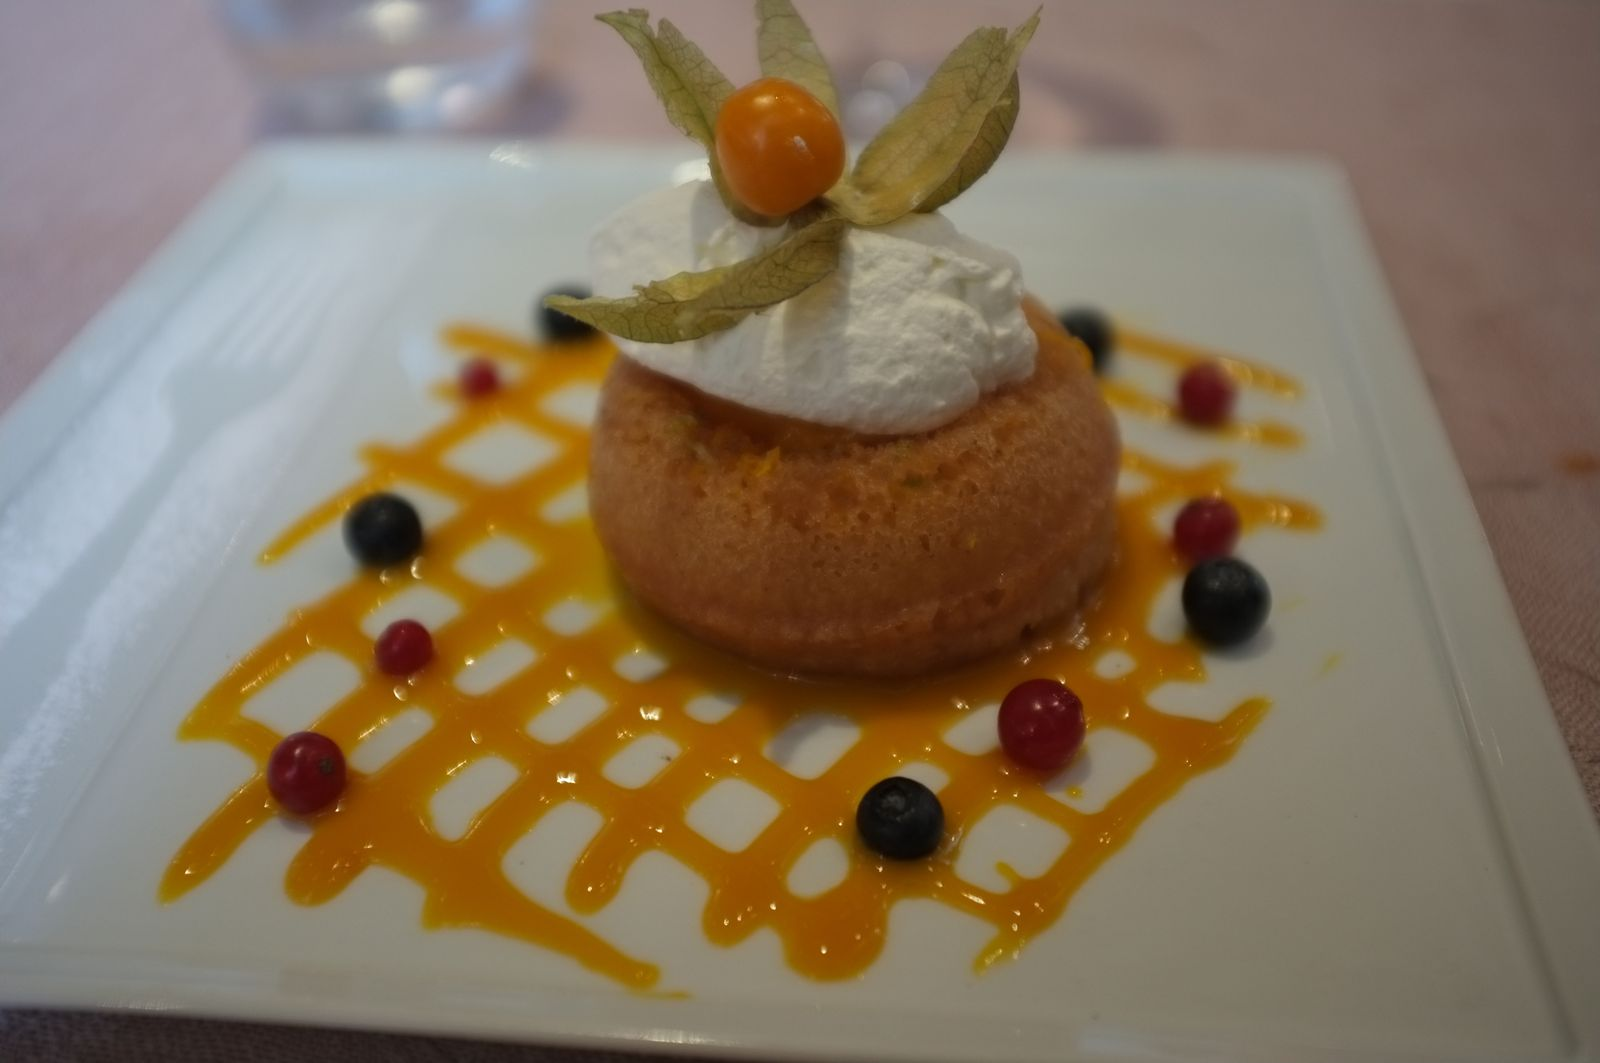 Le savarin à la mangue